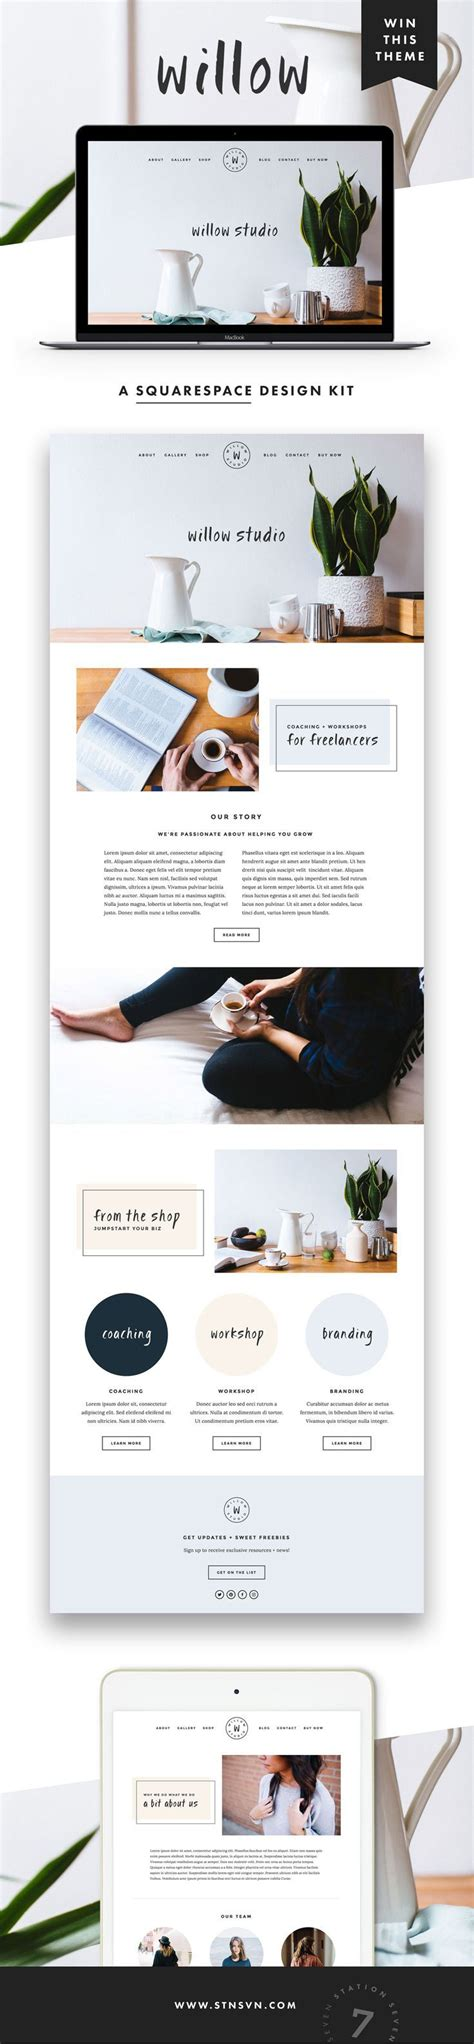 410 Best Images About Branding Inspiration On Pinterest Behance Logos And Business Card Design Feminine Squarespace Templates